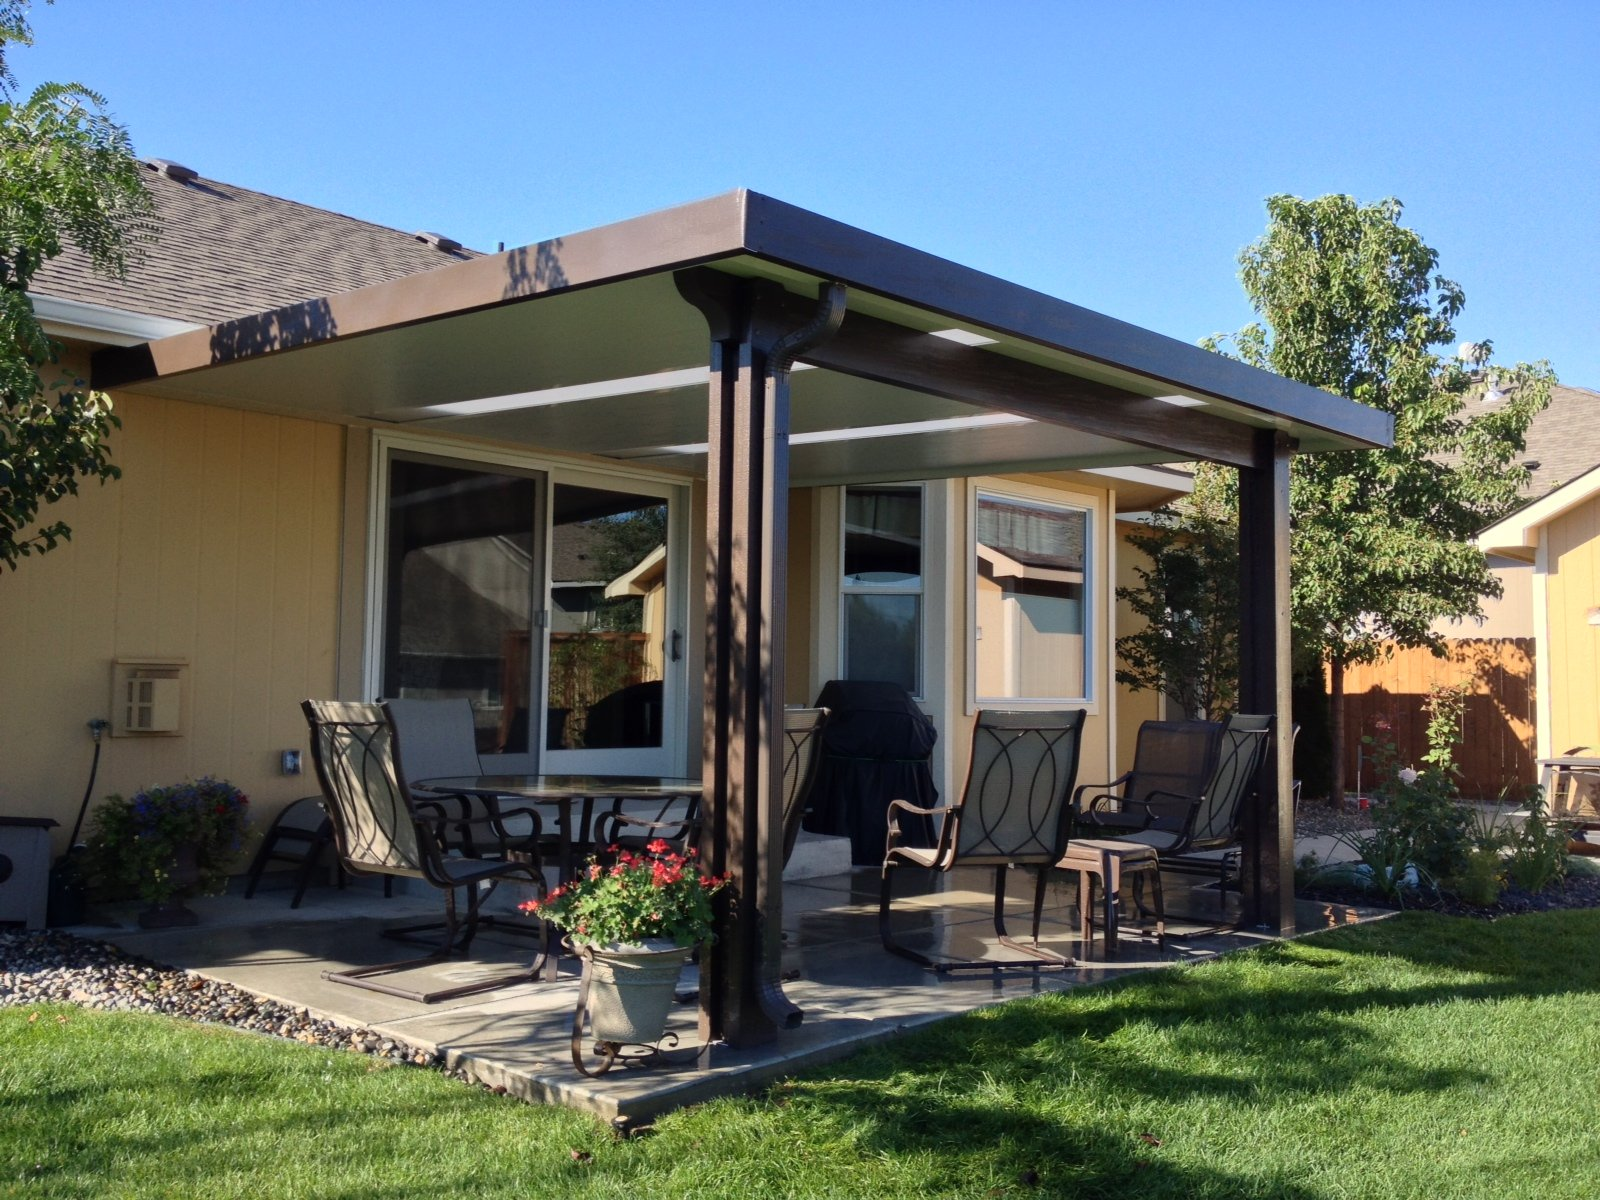 Patio Cover Gallery - Backyard By Design on Backyard Patio Cover  id=67791